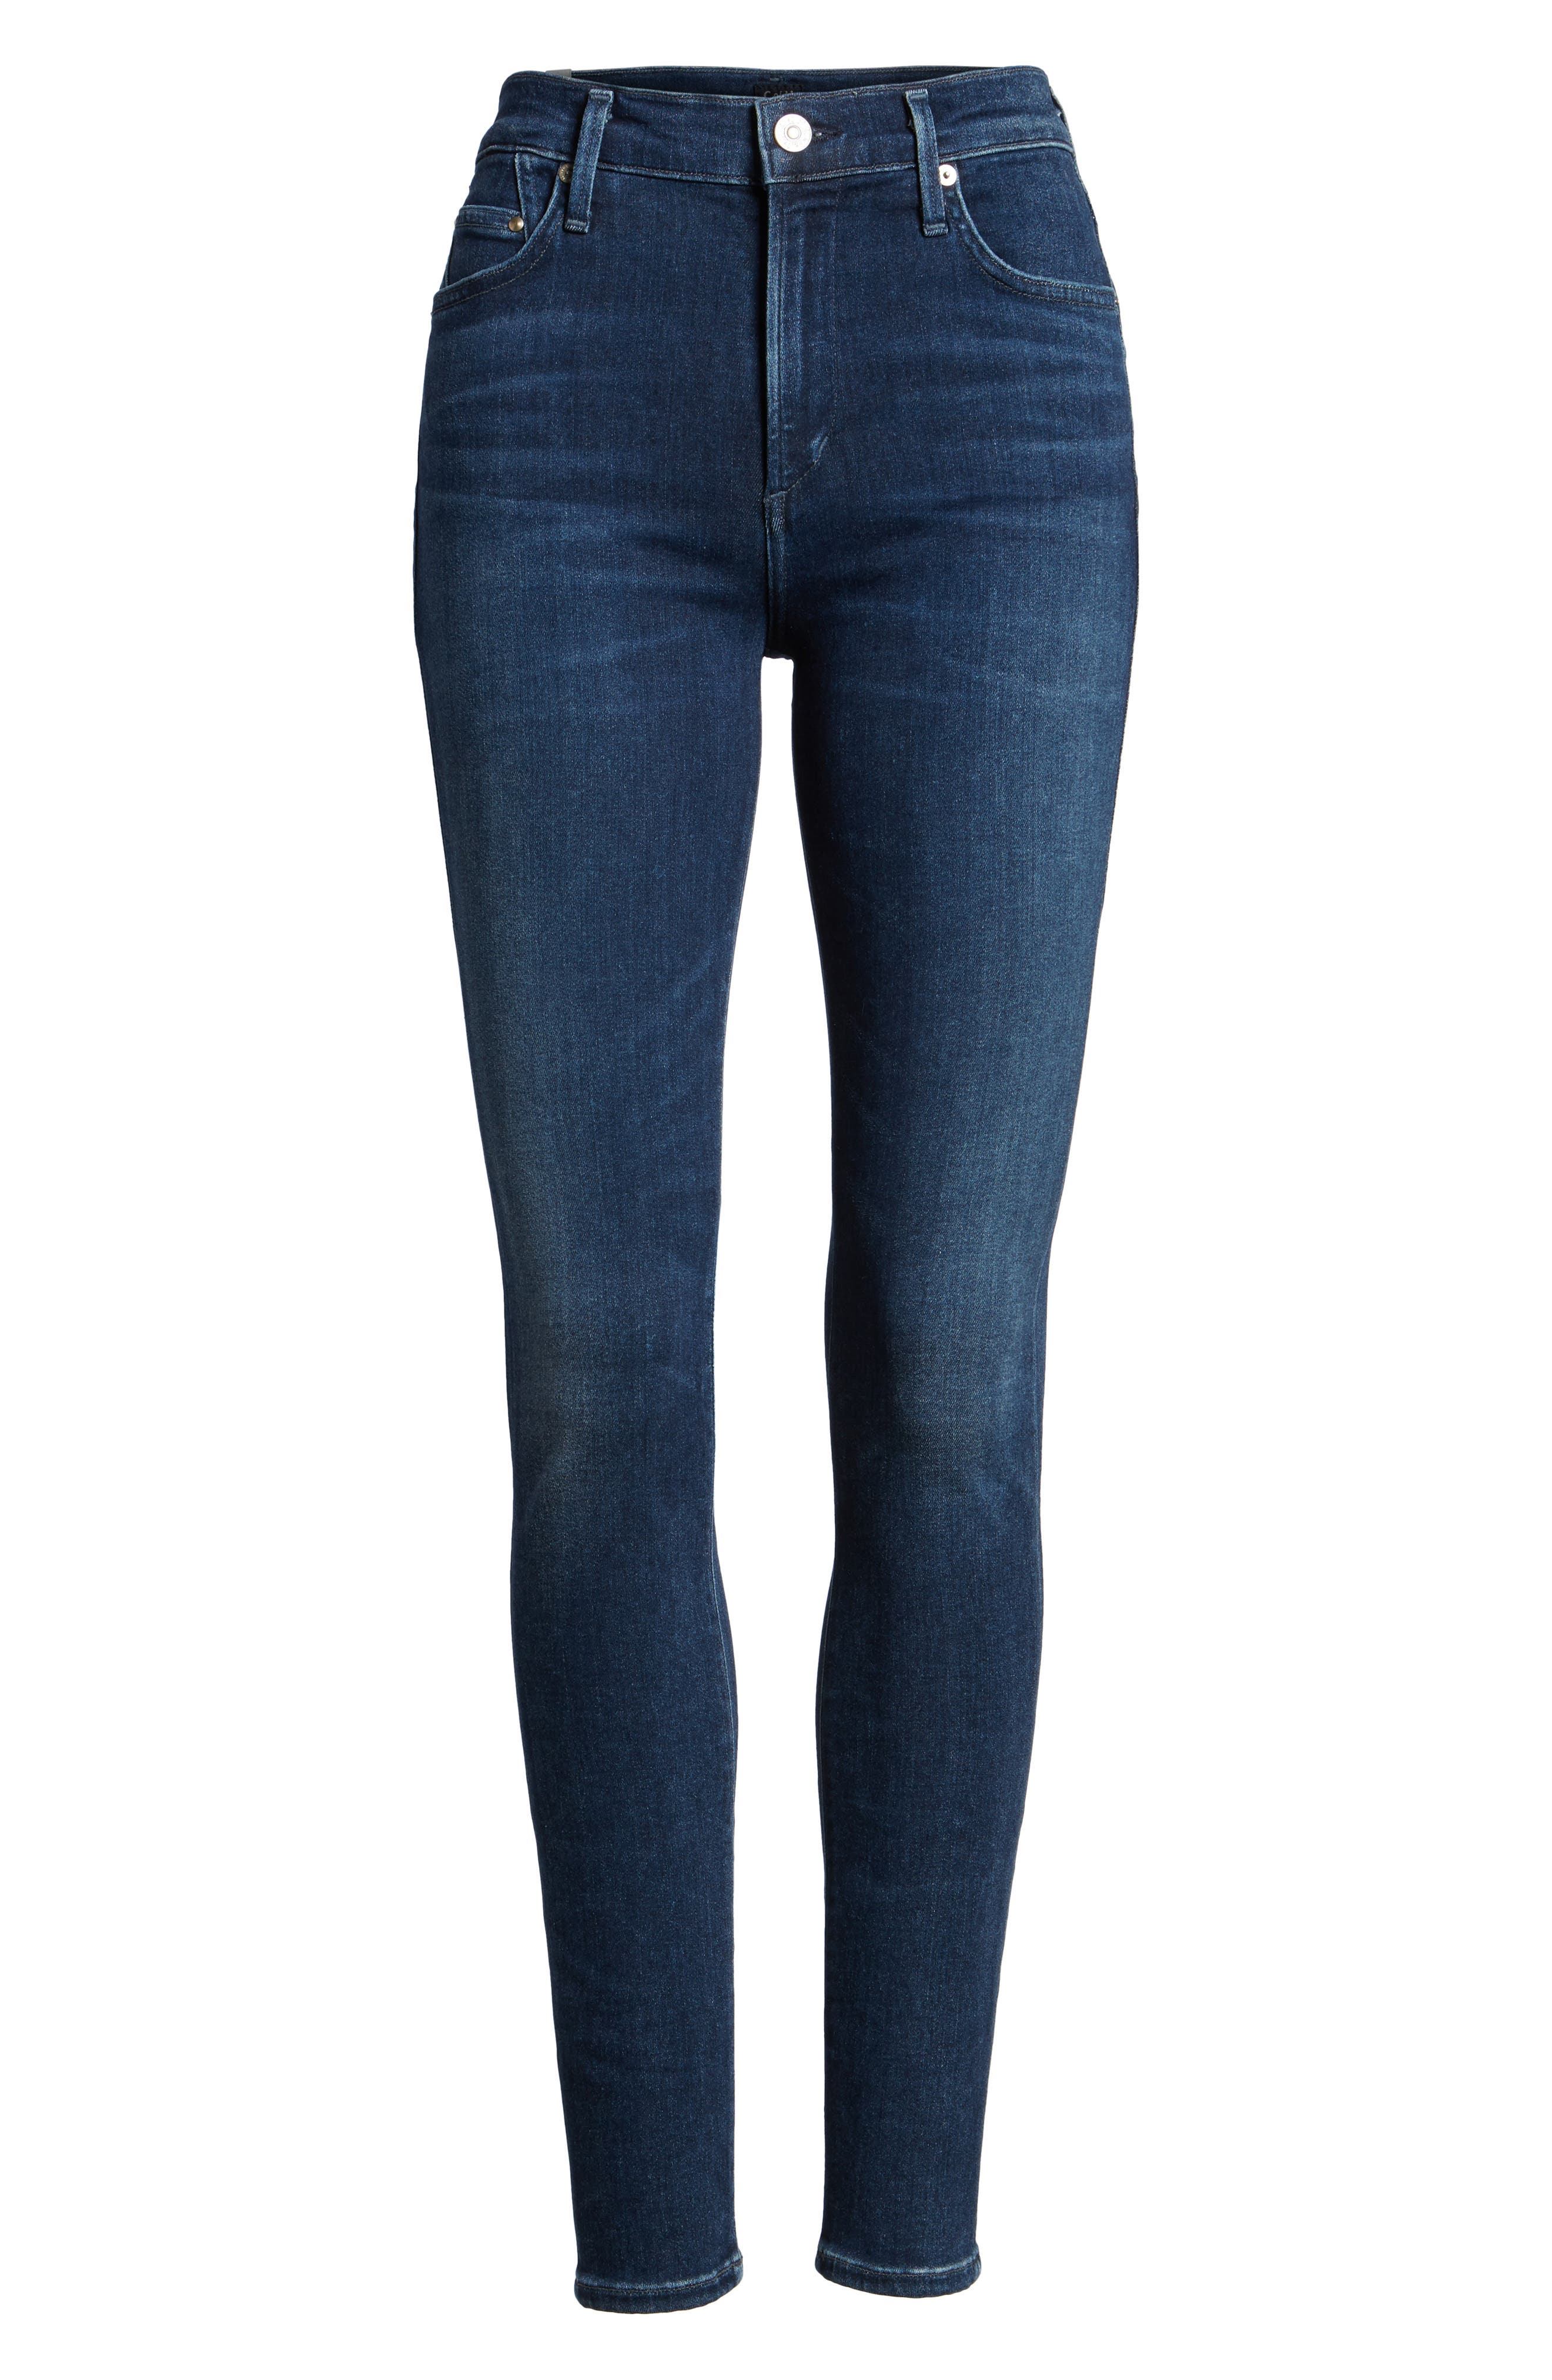 CITIZENS OF HUMANITY, Sculpt - Rocket High Waist Skinny Jeans, Alternate thumbnail 2, color, WAVERLY